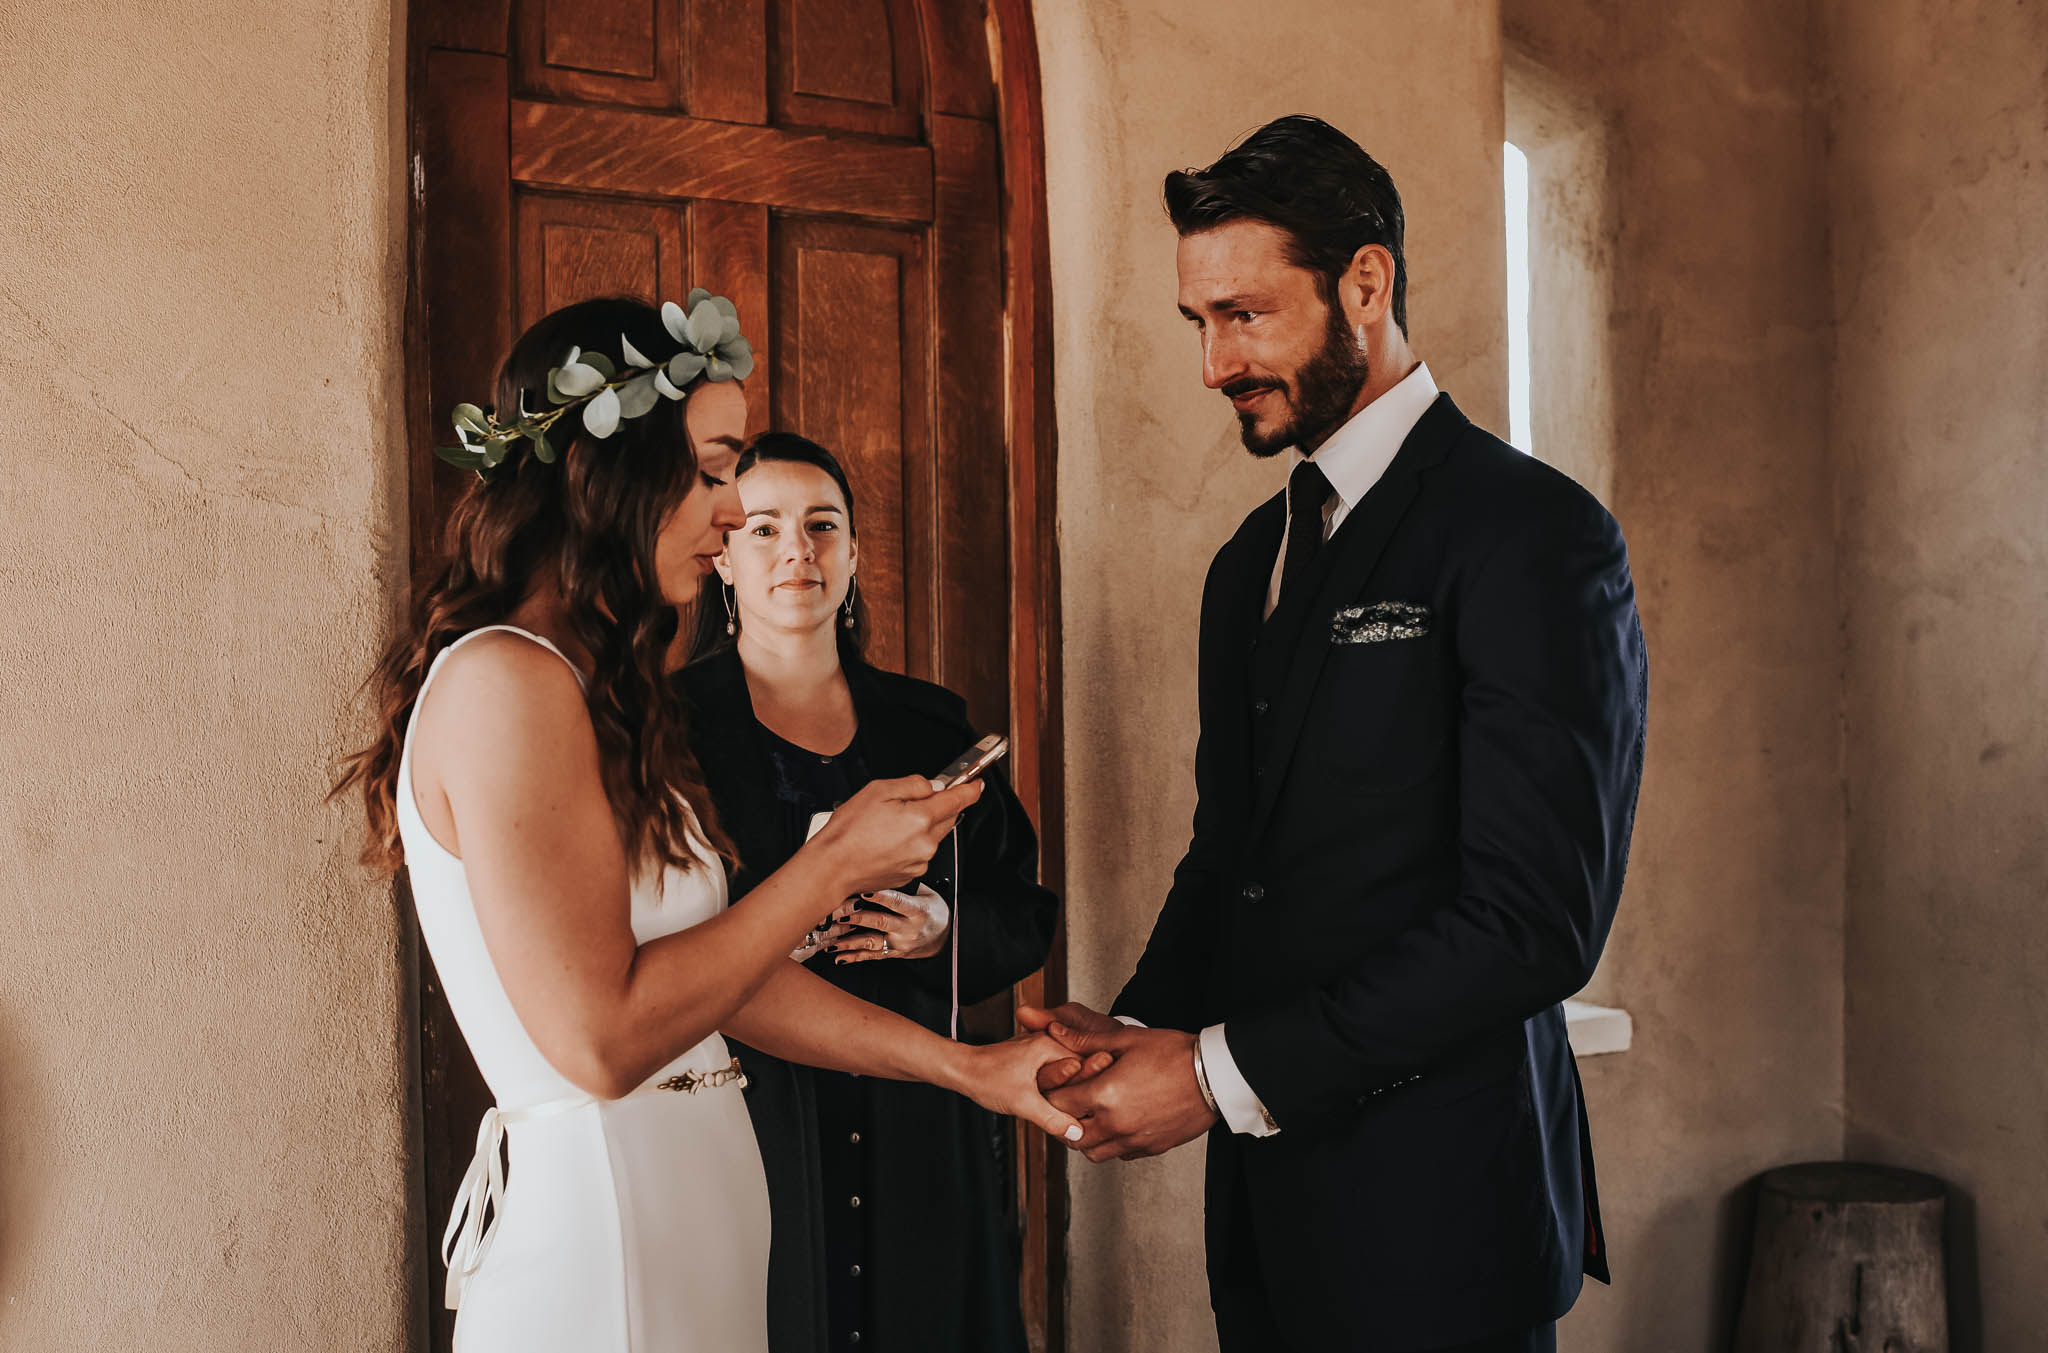 Bohemian Intimate Wedding at Chapel Dulcinea in Austin, Texas.